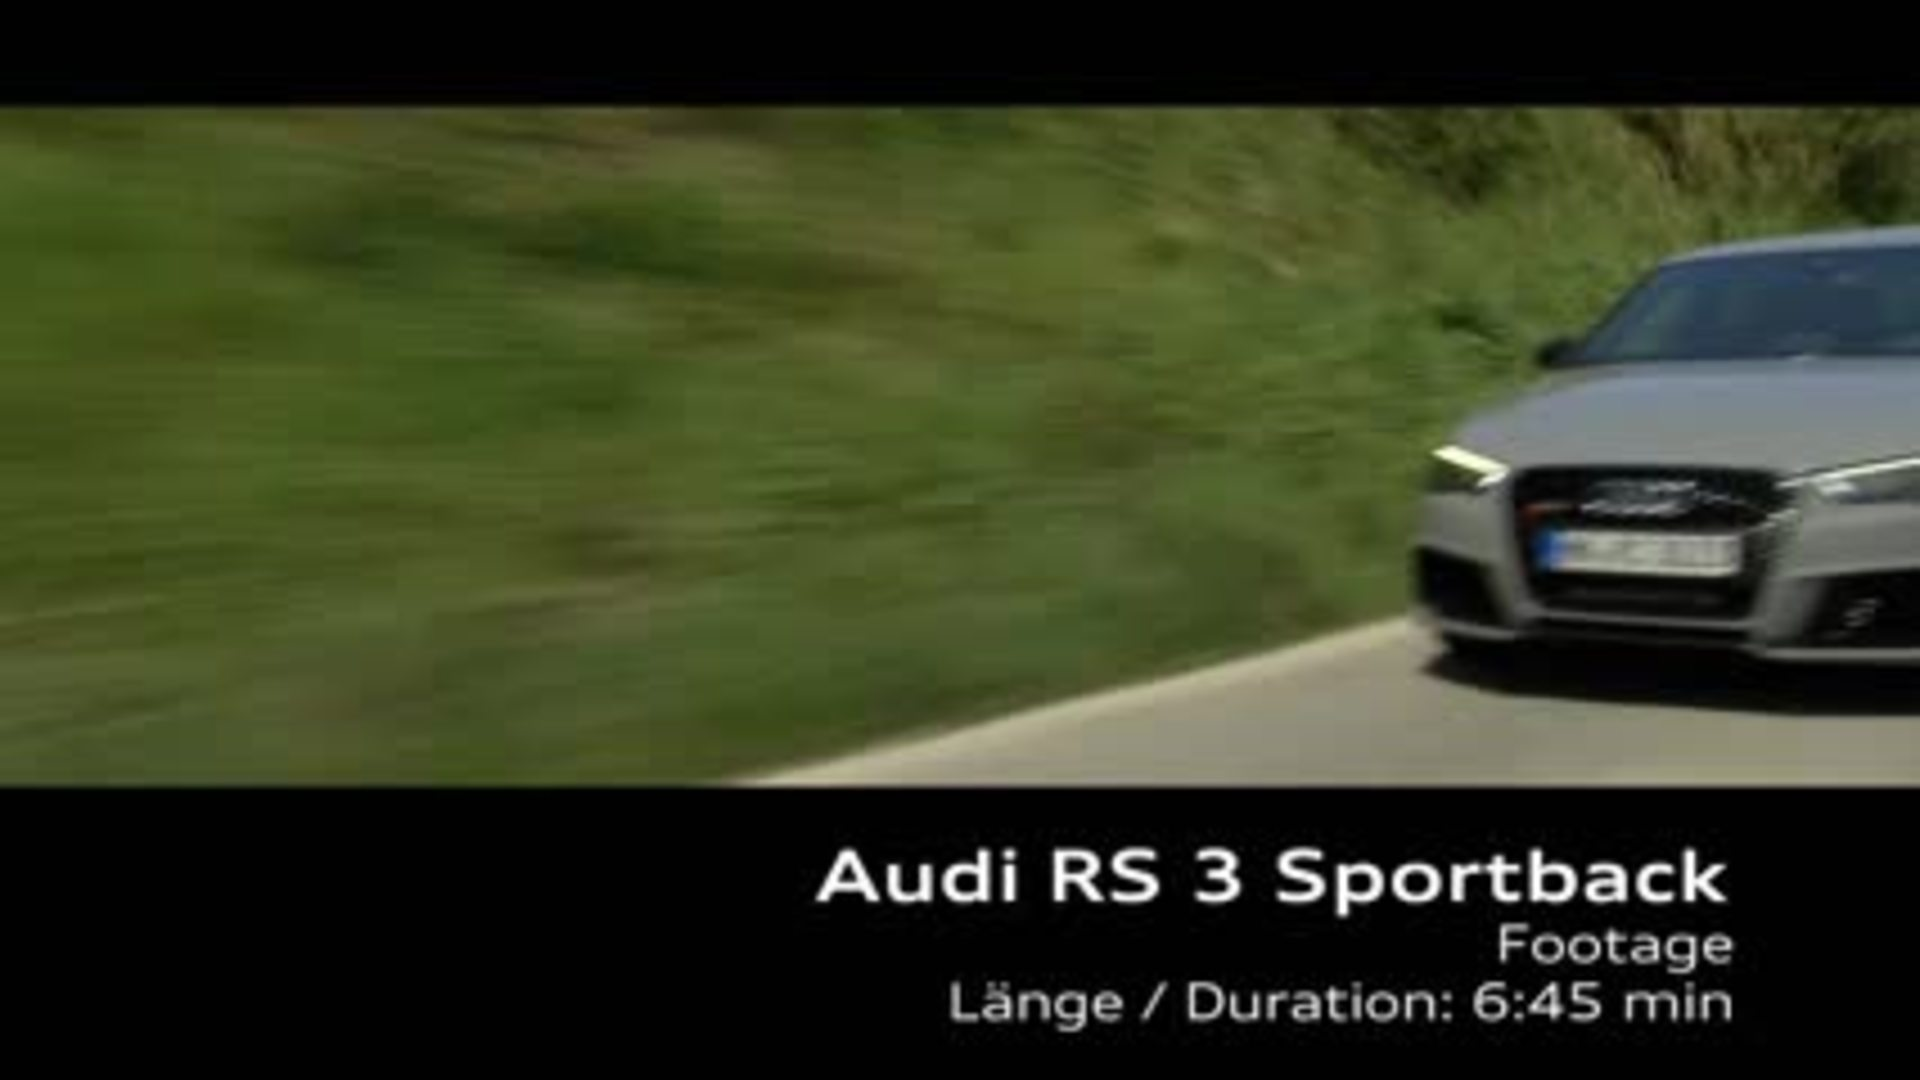 The new Audi RS 3 Sportback / Footage spring